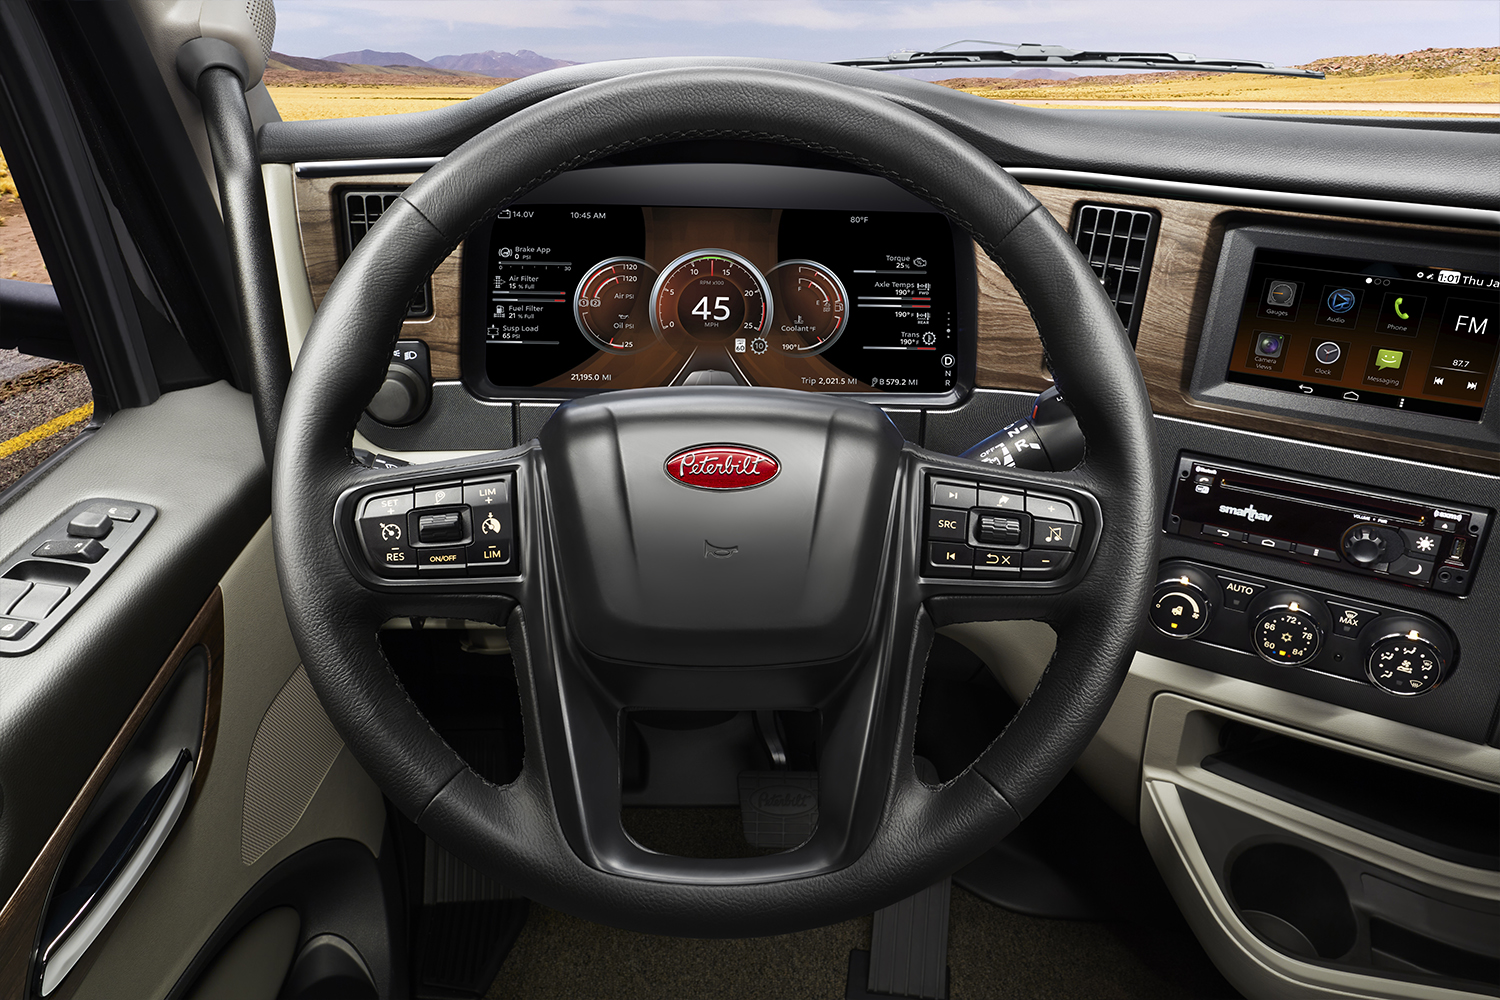 The all-new digital dash in Peterbilt's new Model 579 displays new safety systems available to drivers